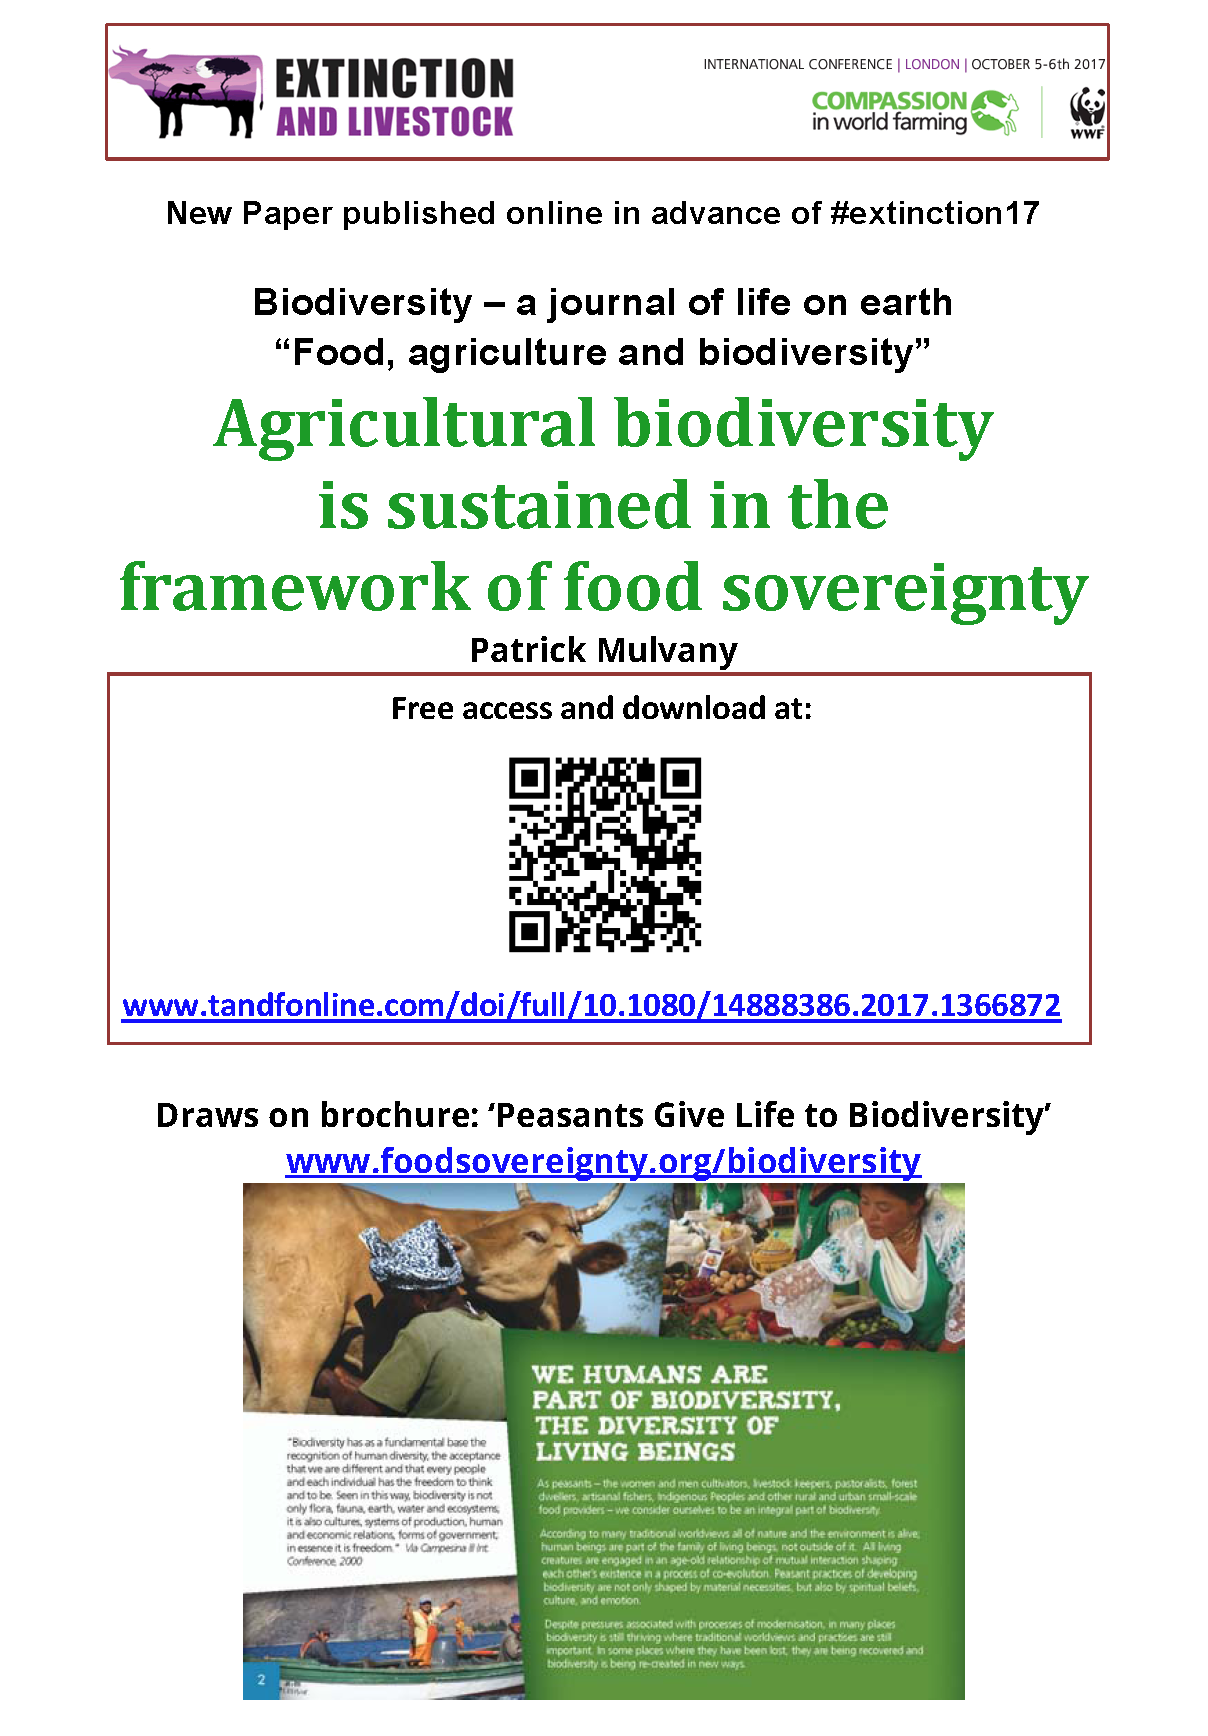 Agricultural biodiversity is sustained in the framework of food sovereignty